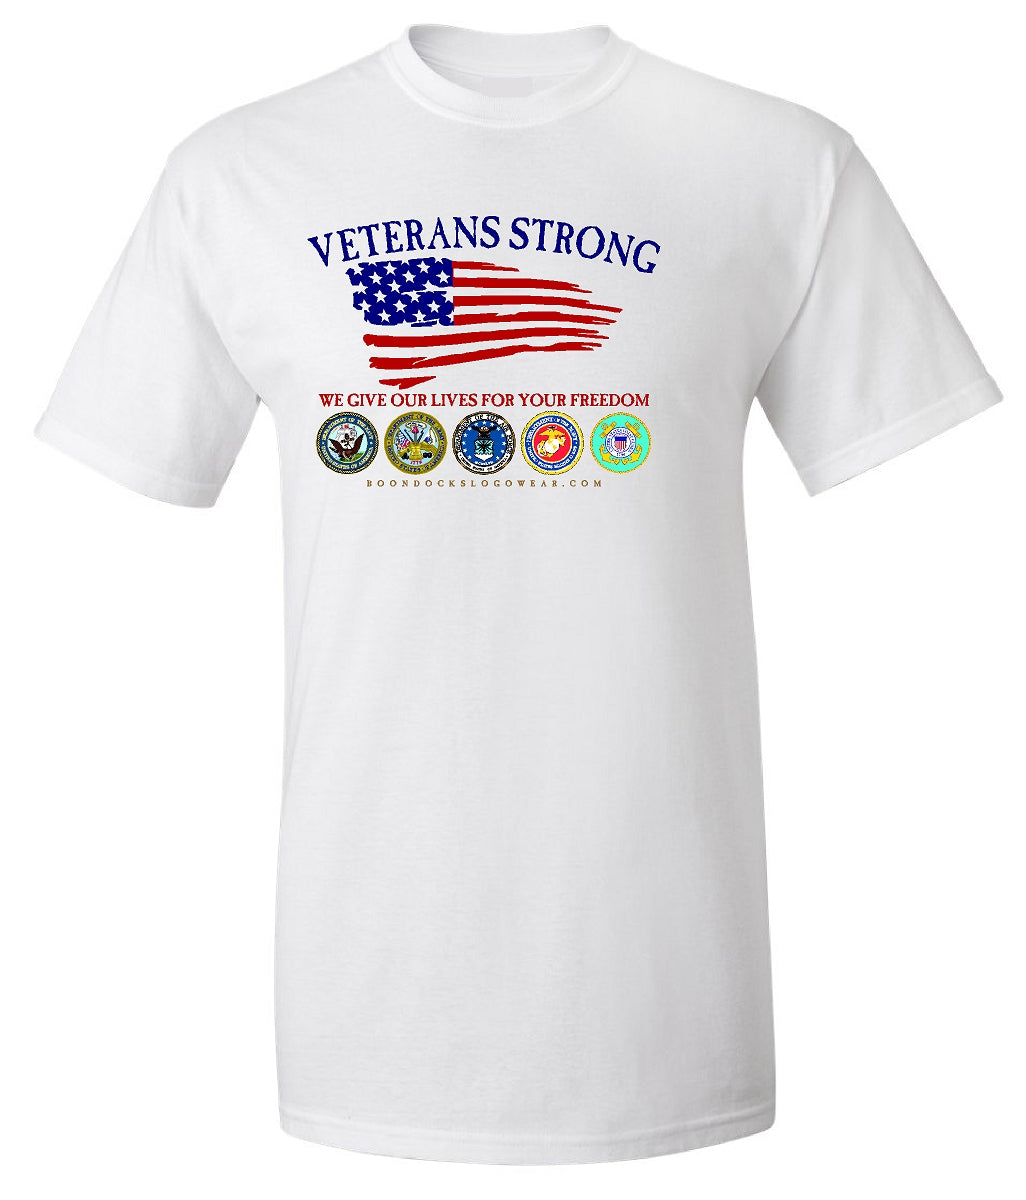 VETERANS STRONG Short sleeve Comfort Colors Heavyweight Tee